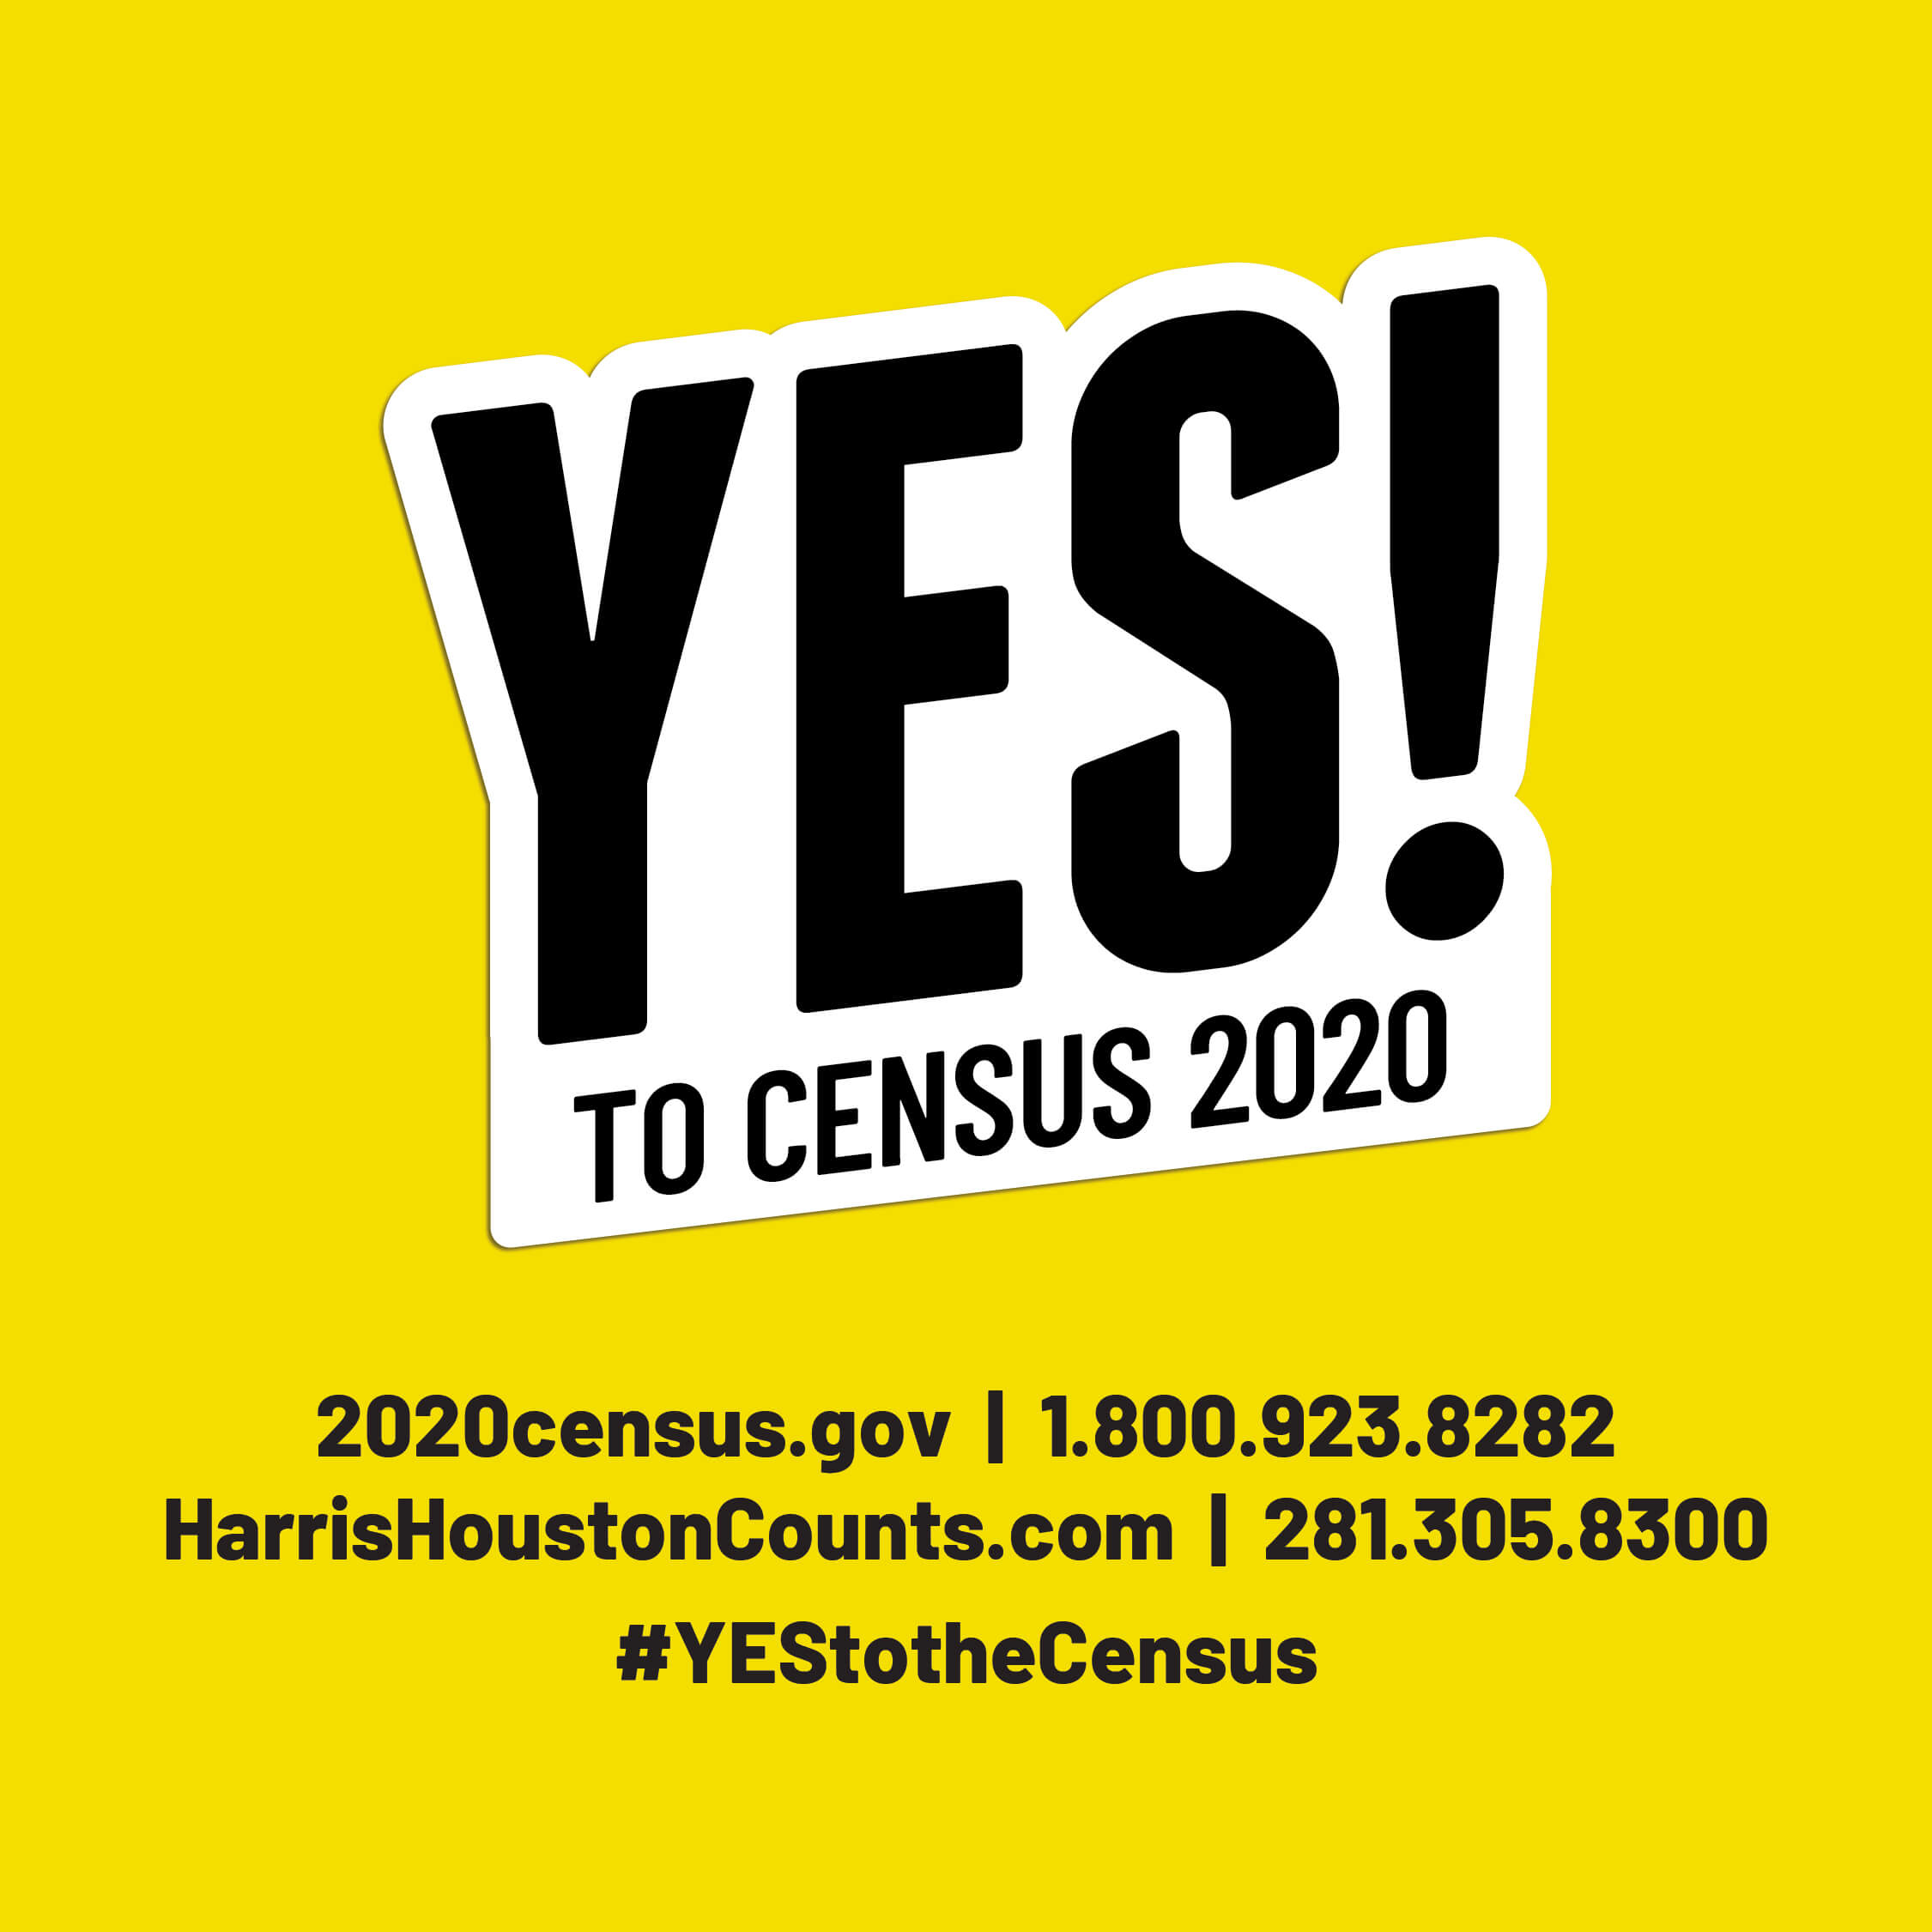 Be Counted.  We all need to participate in the U.S. Census!